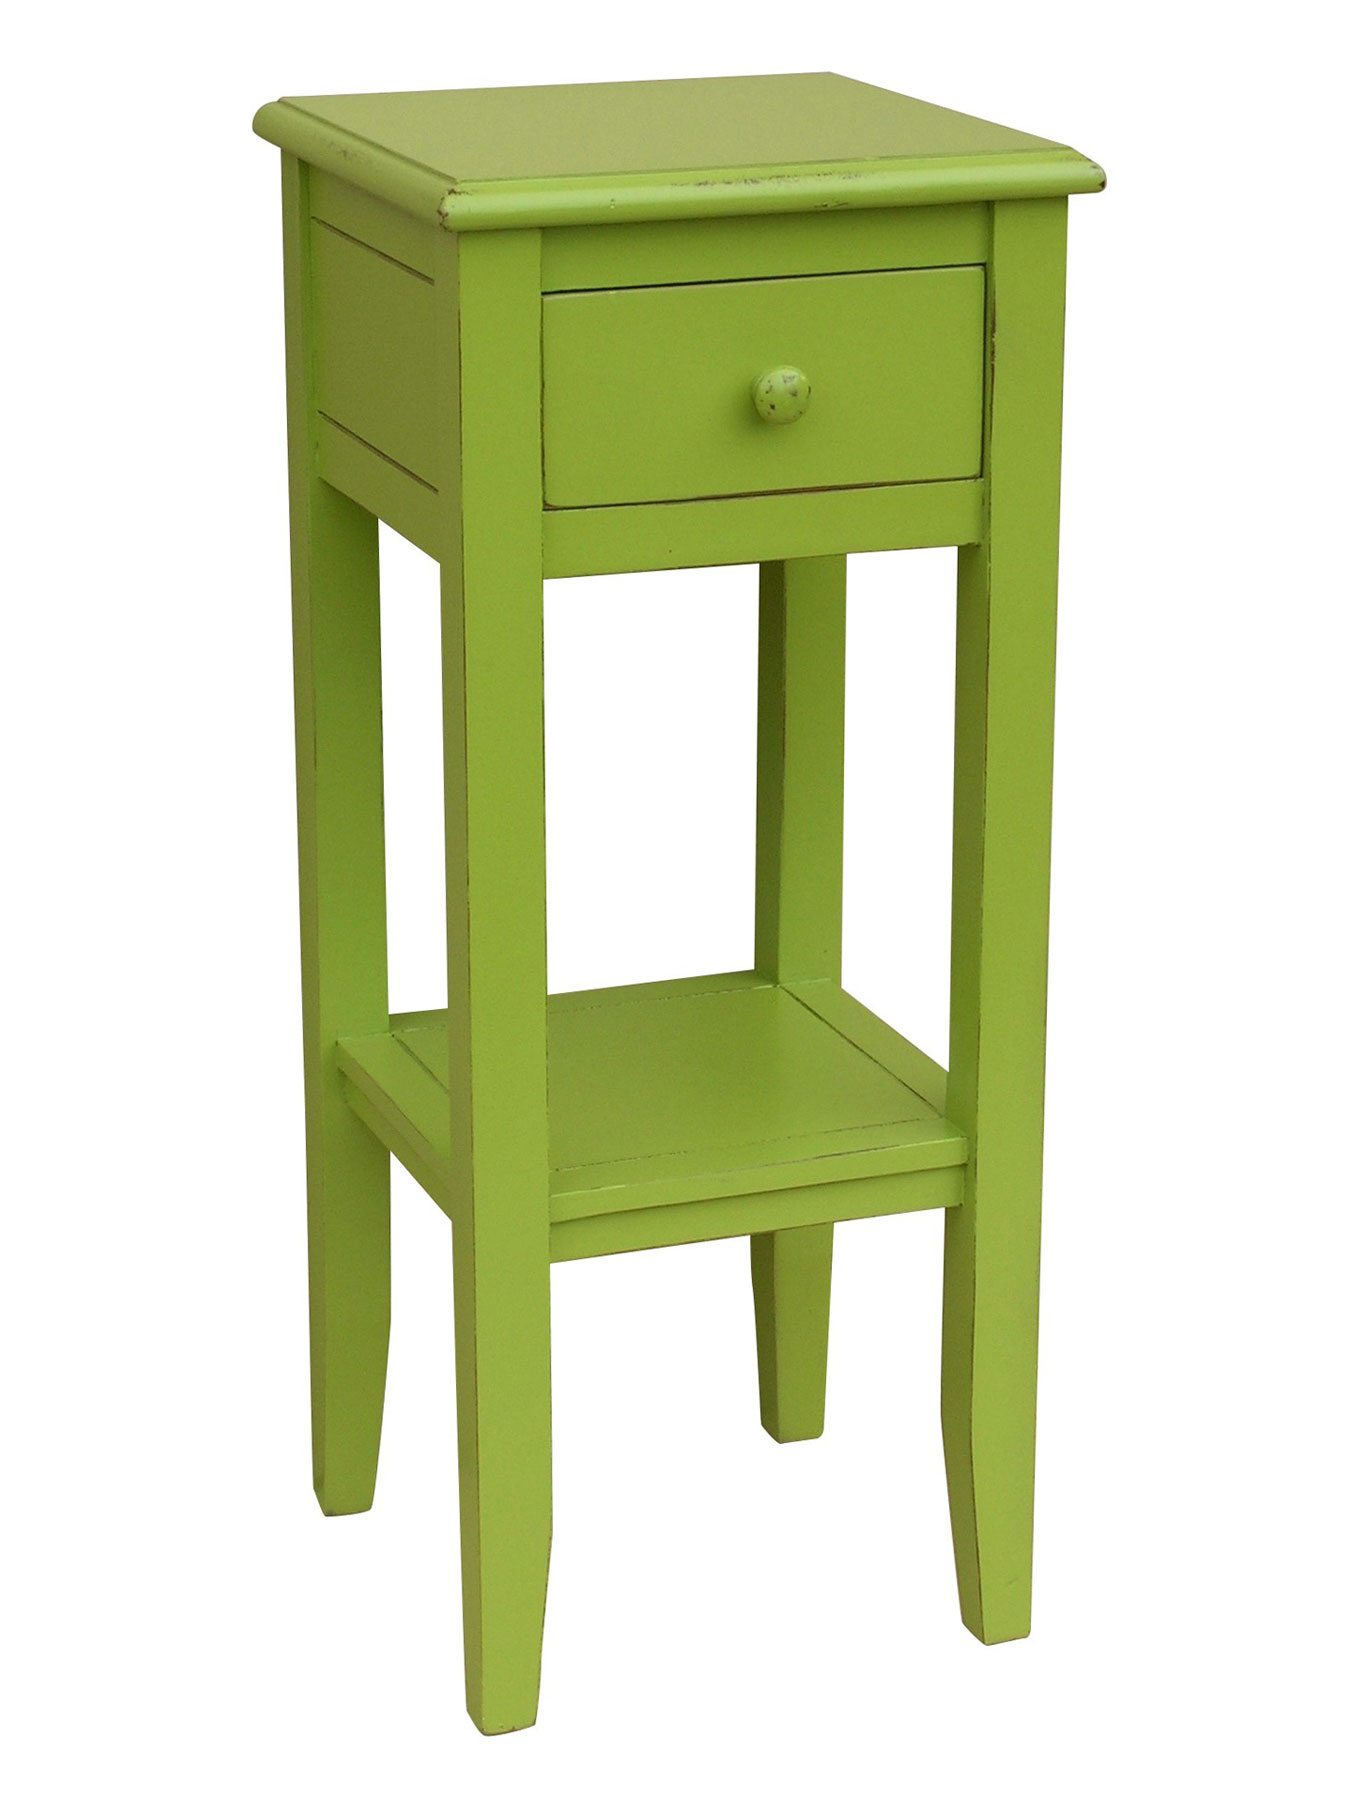 homestead accent table cottage home tall apple green unfinished dining chairs pretty round tablecloths martin furnishings ashley furniture storage white mirrored console metal